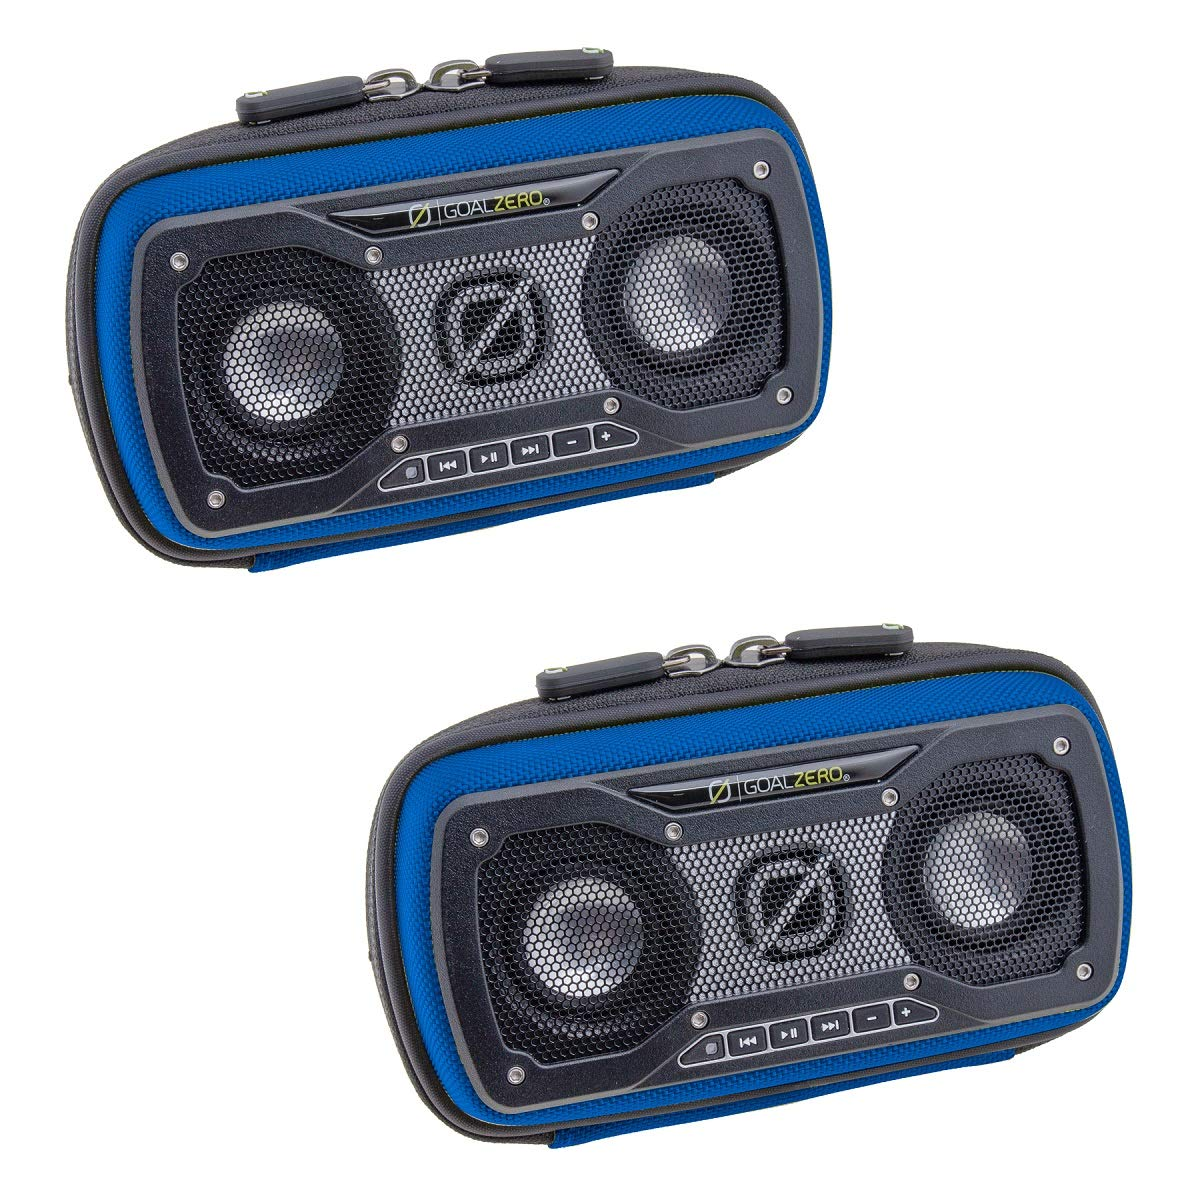 Goal Zero (2 Pack) Portable Speaker, Outdoor Speaker for Phone, iPod, MP3, Travel, Camping, Party with Aux Input, Link Capability and Dark Bass Technology